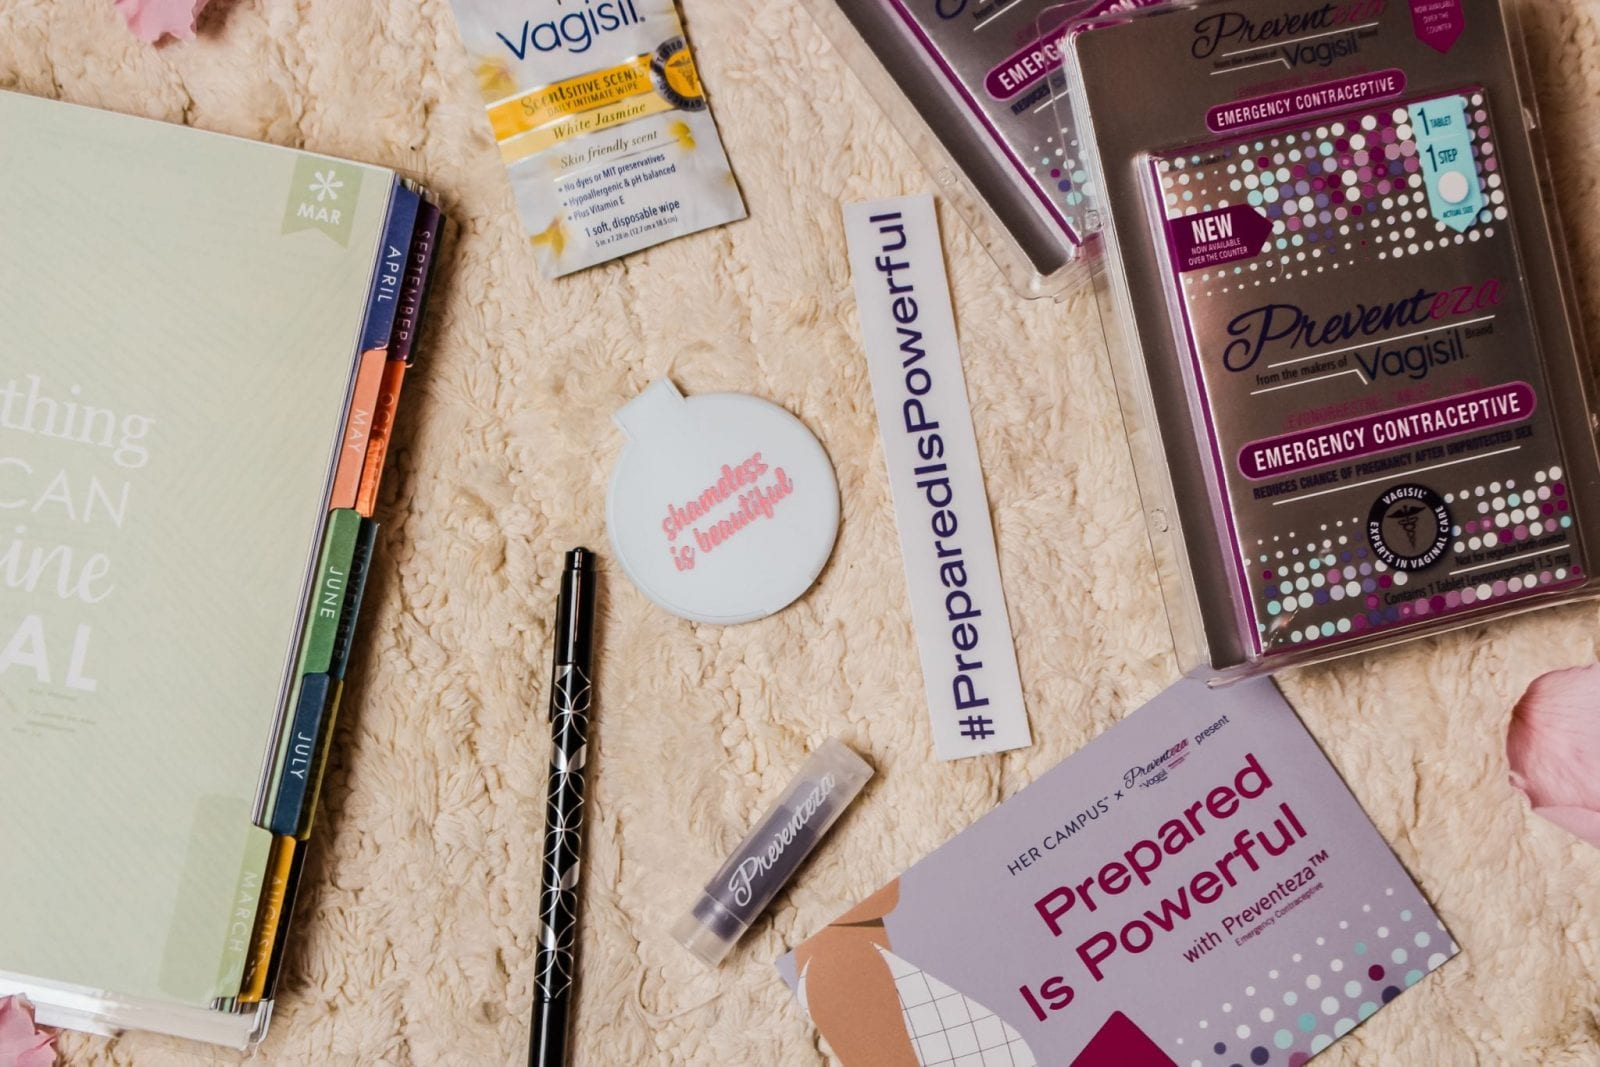 This is a flat lay shot of Being Prepared with Vagisil®'s new emergency contraceptive product.